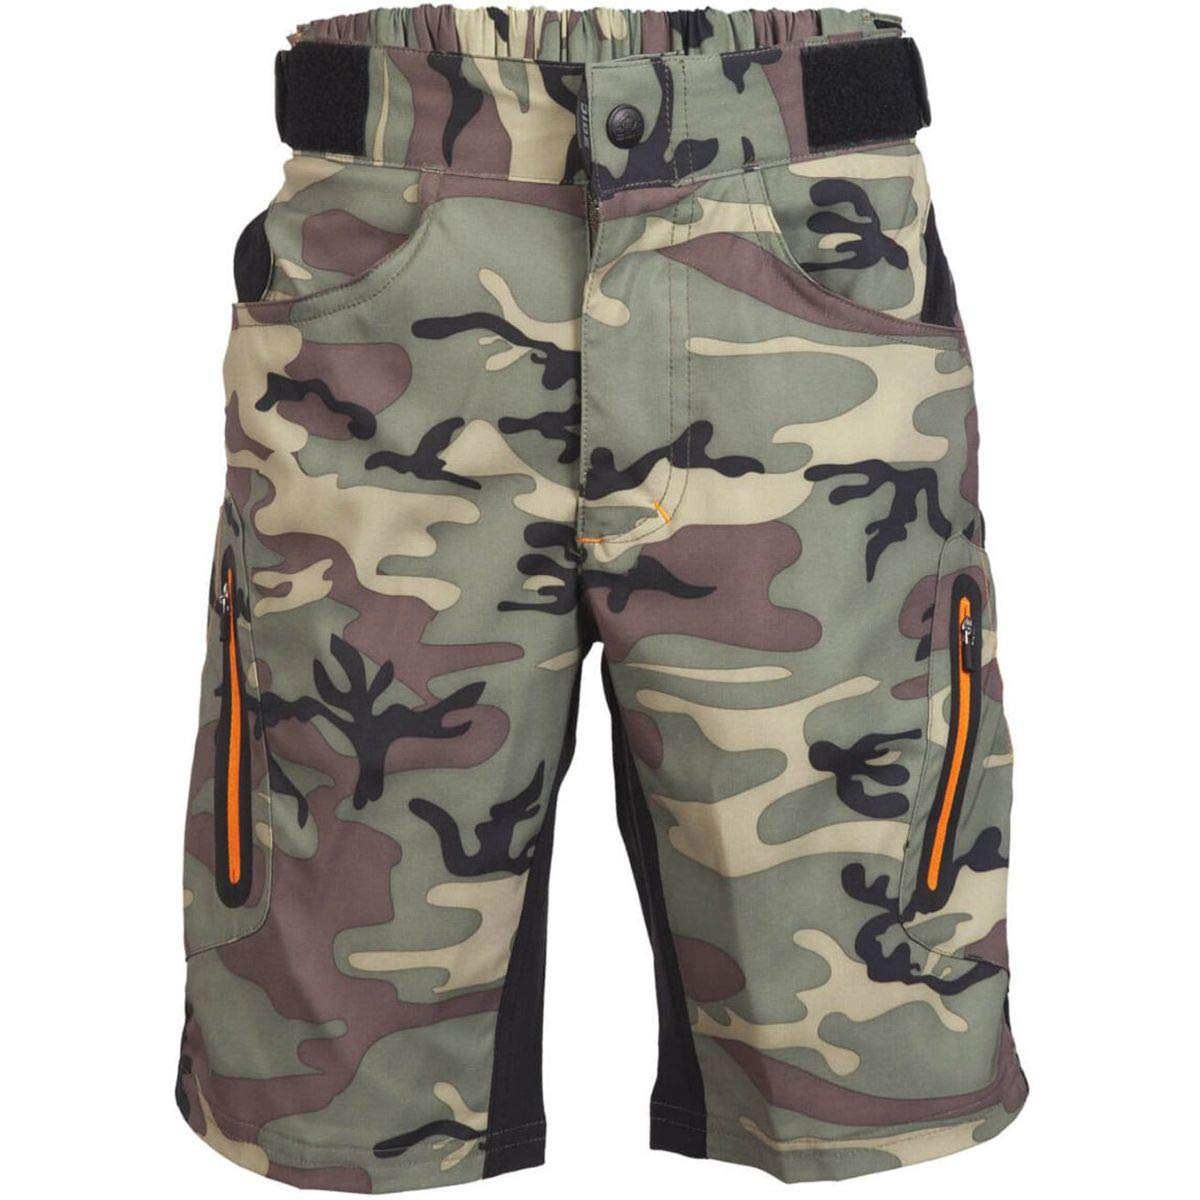 ZOIC Boy's Ether Jr. Shorts, Green Camo, Large